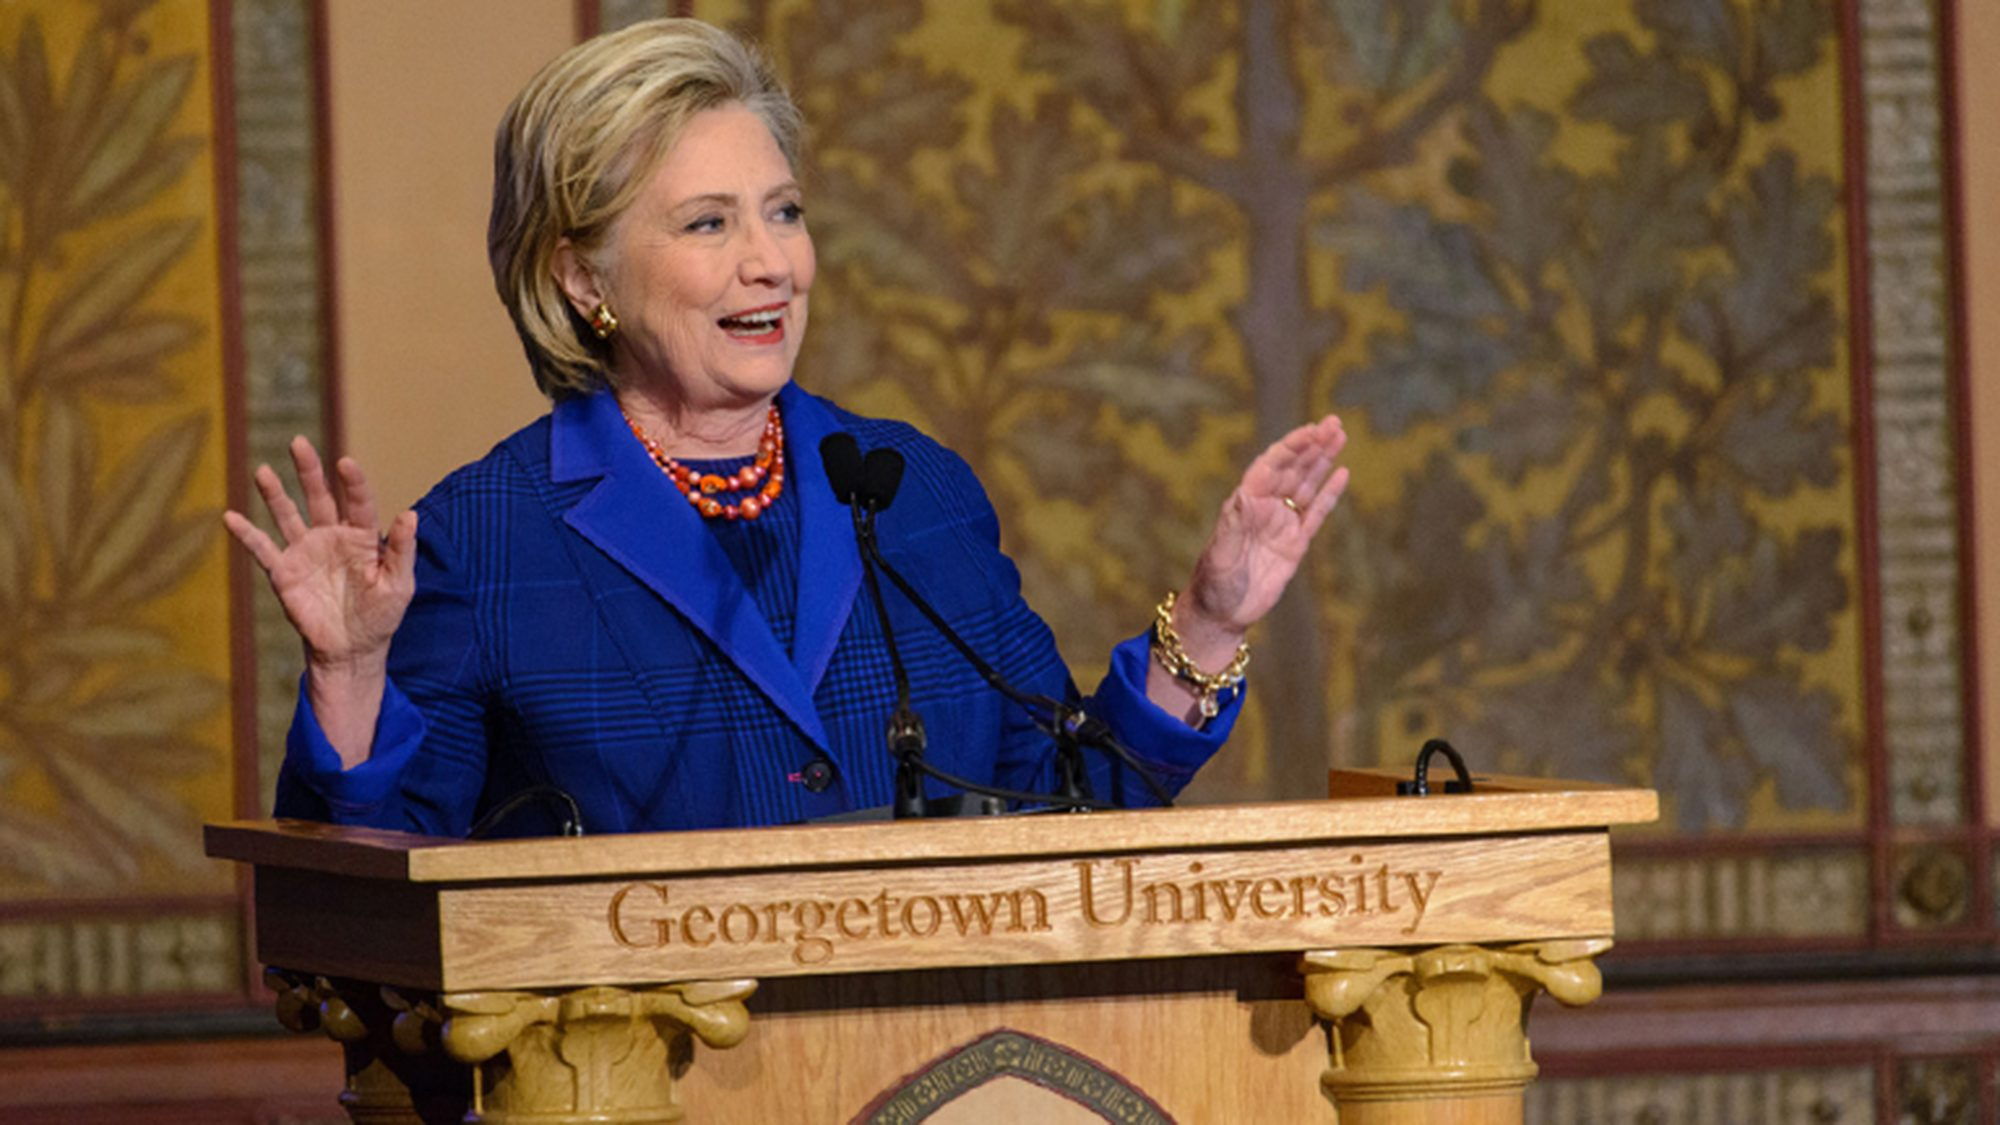 Hillary Rodham Clinton speaking at a podium with Georgetown University carved into it